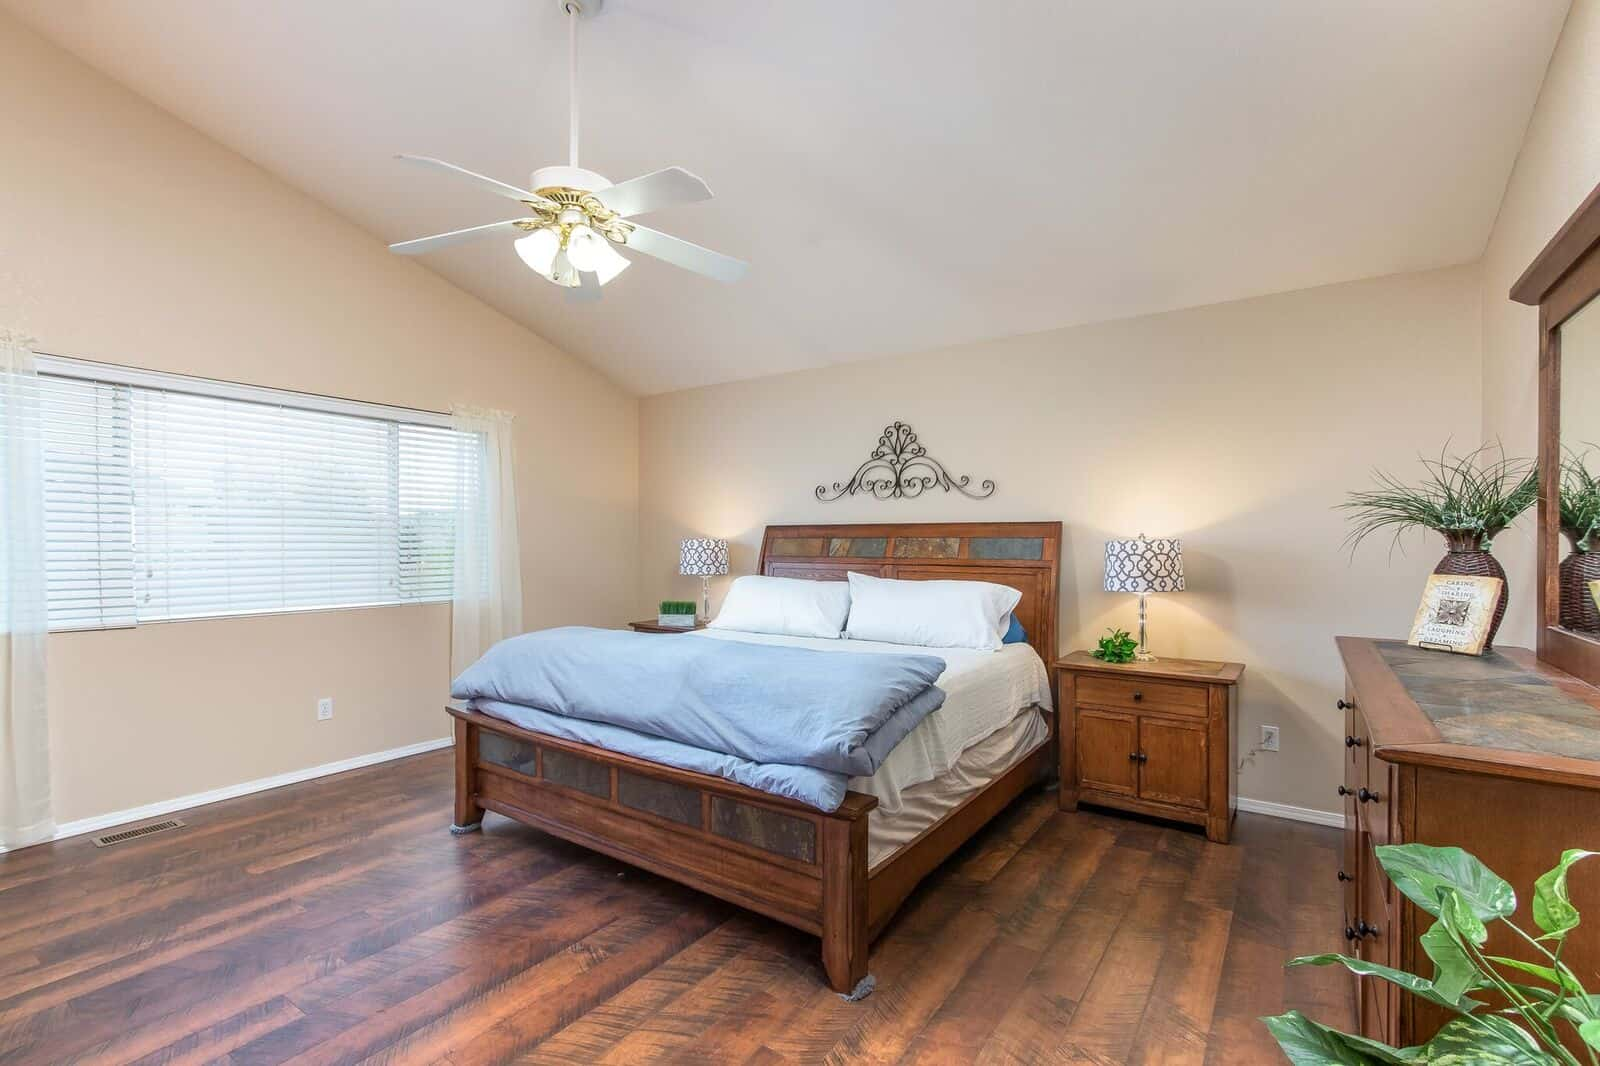 Upper Master Bedroom with Wood Flooring